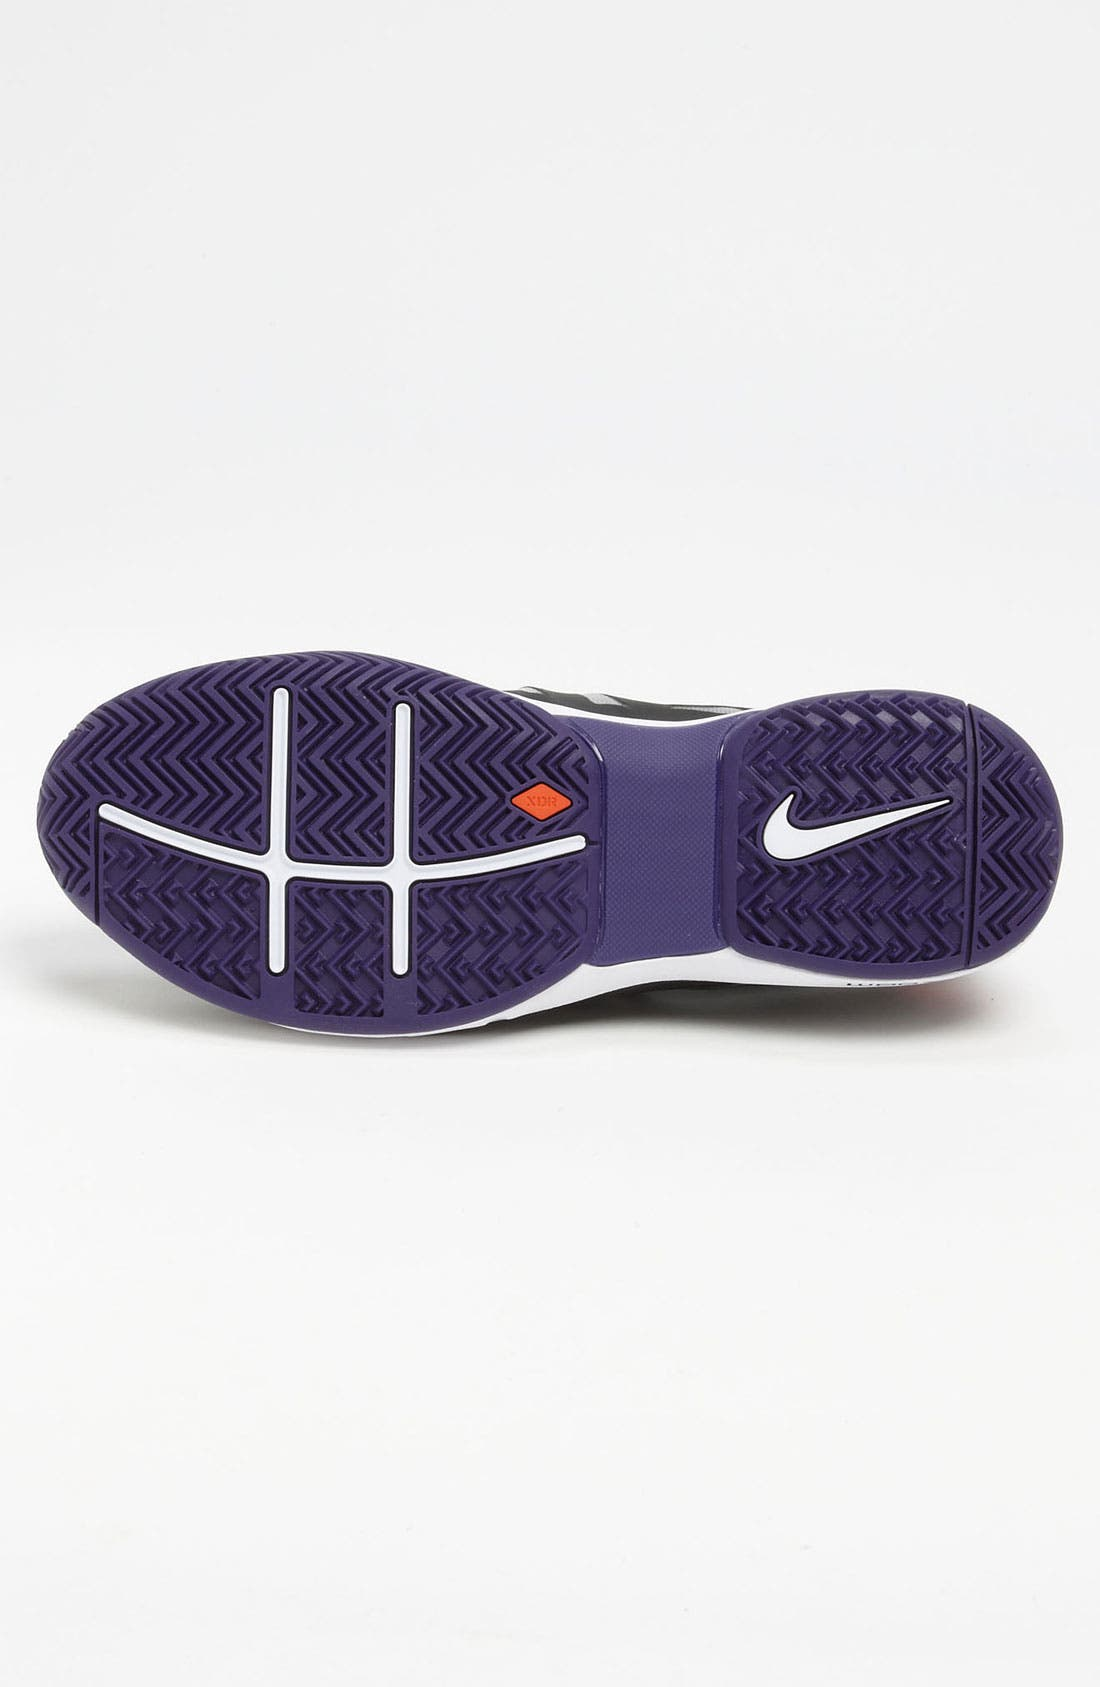 Alternate Image 2  - Nike 'Zoom Vapor 9 Tour' Tennis Shoe (Men)